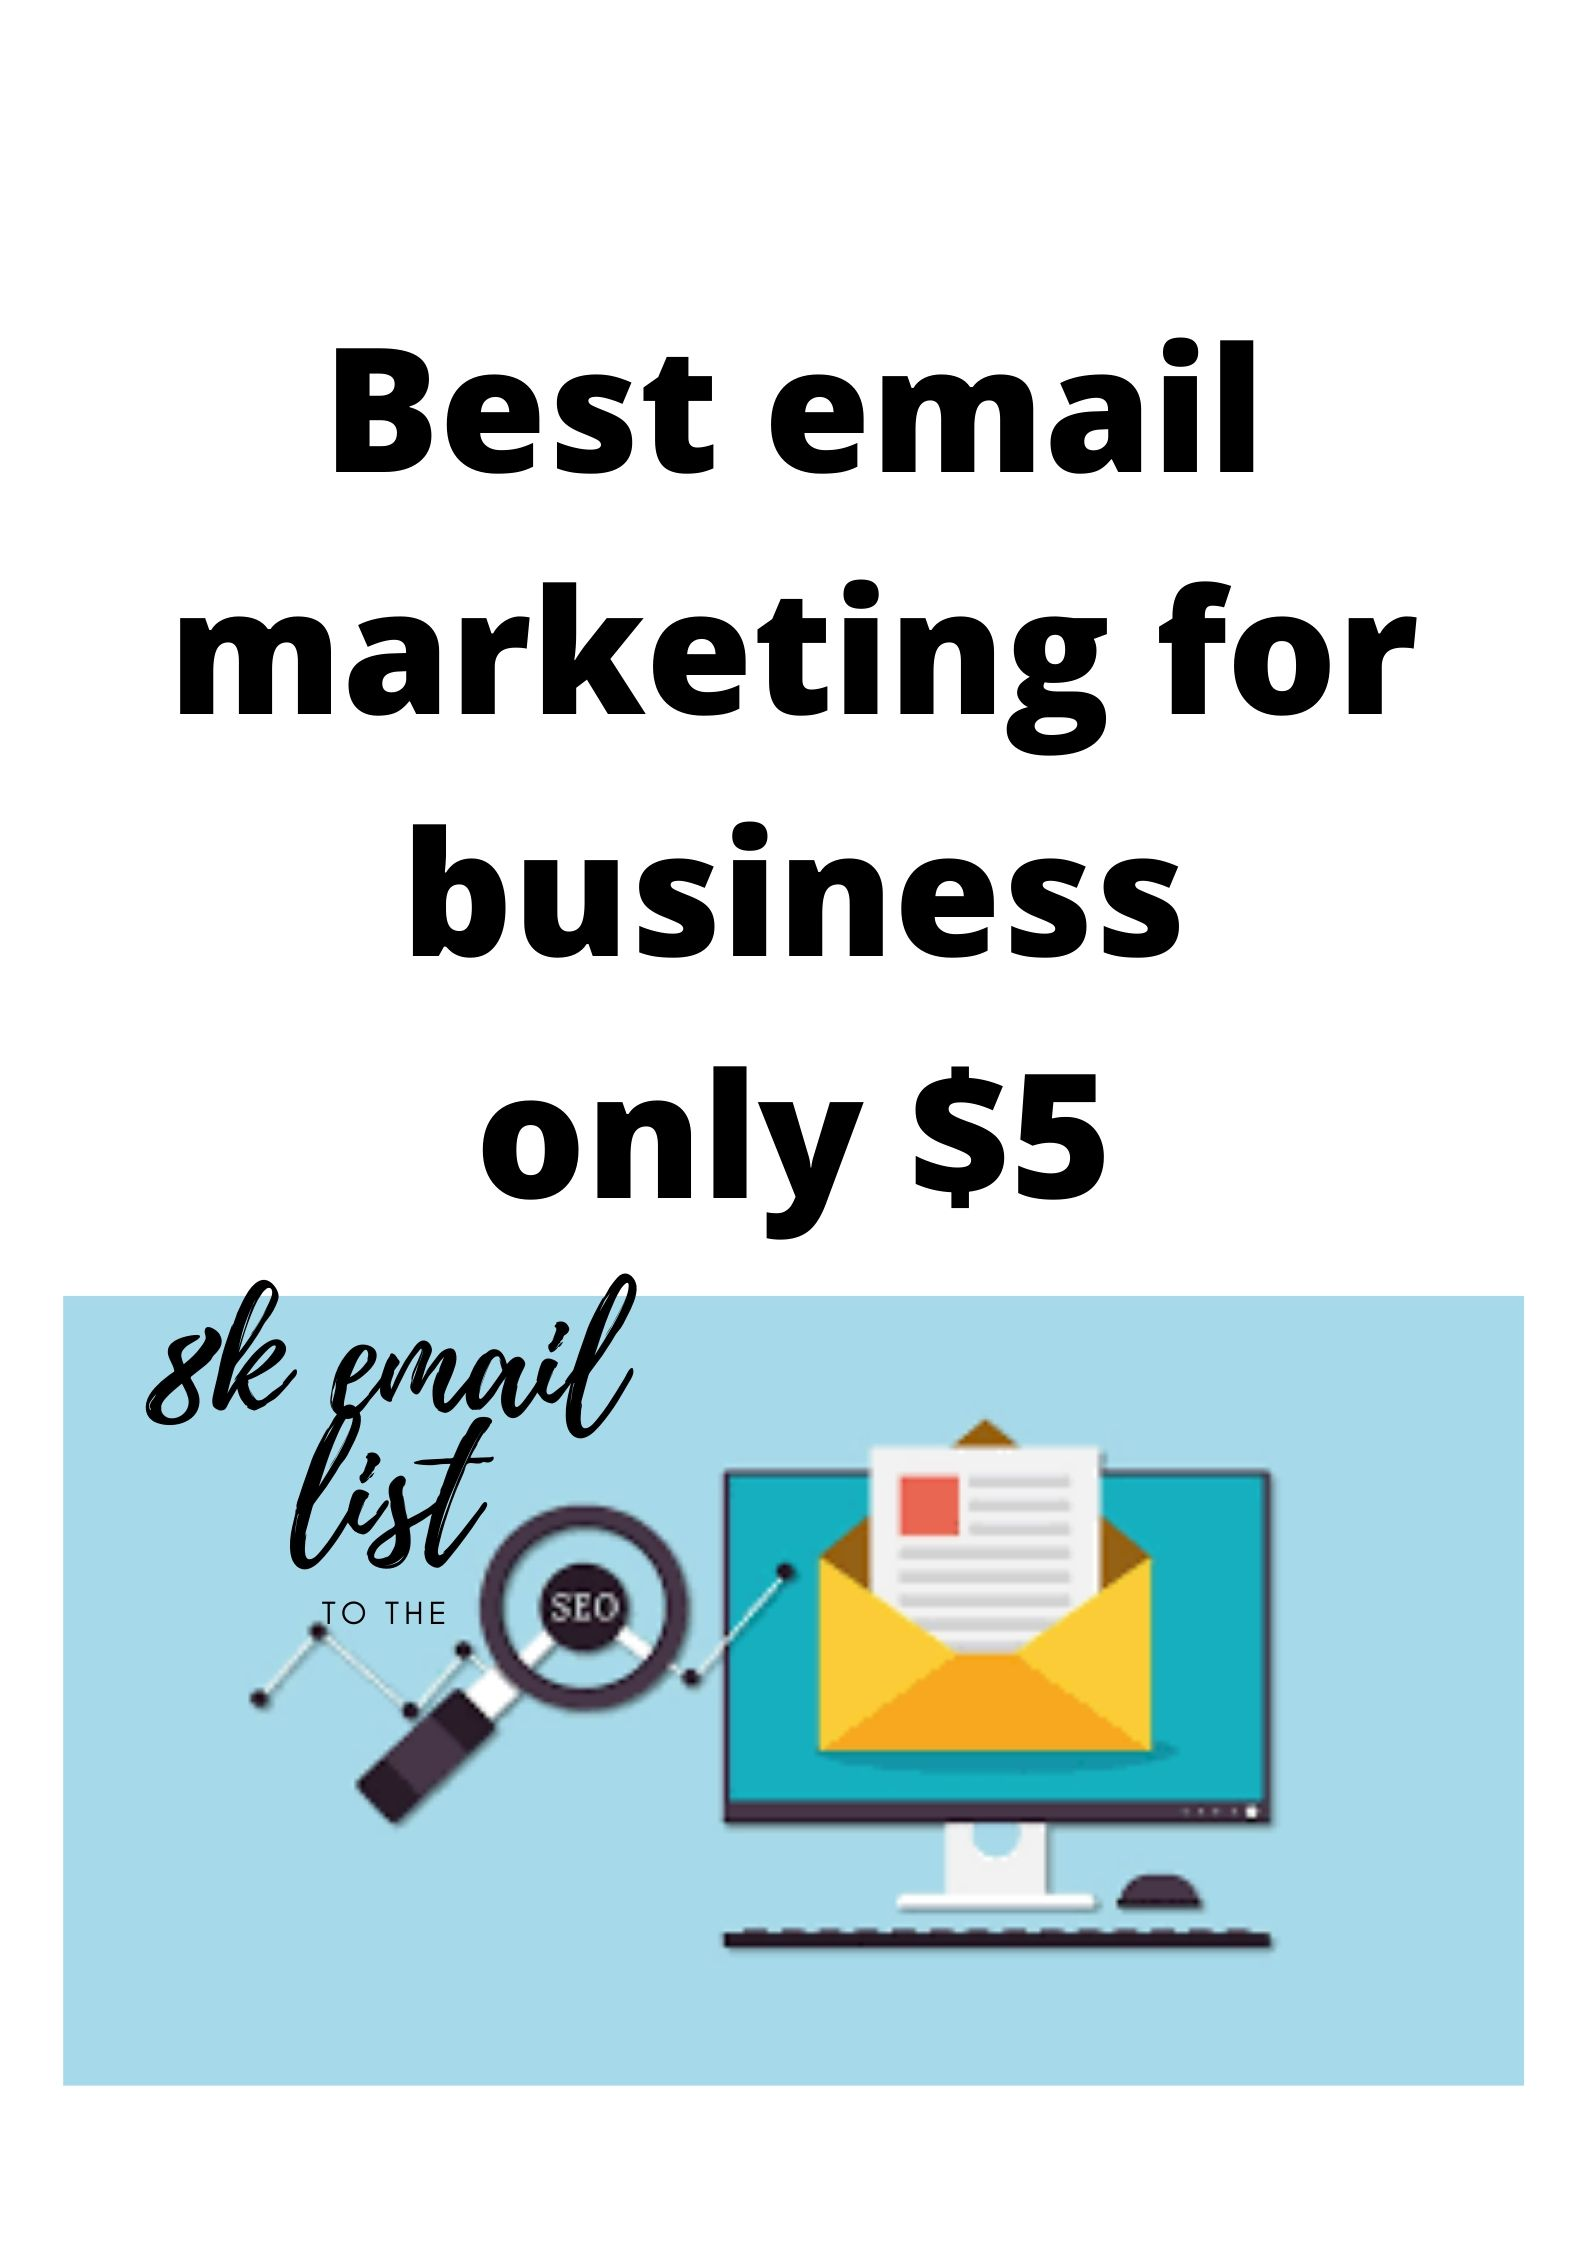 Best email list for business 8k email list